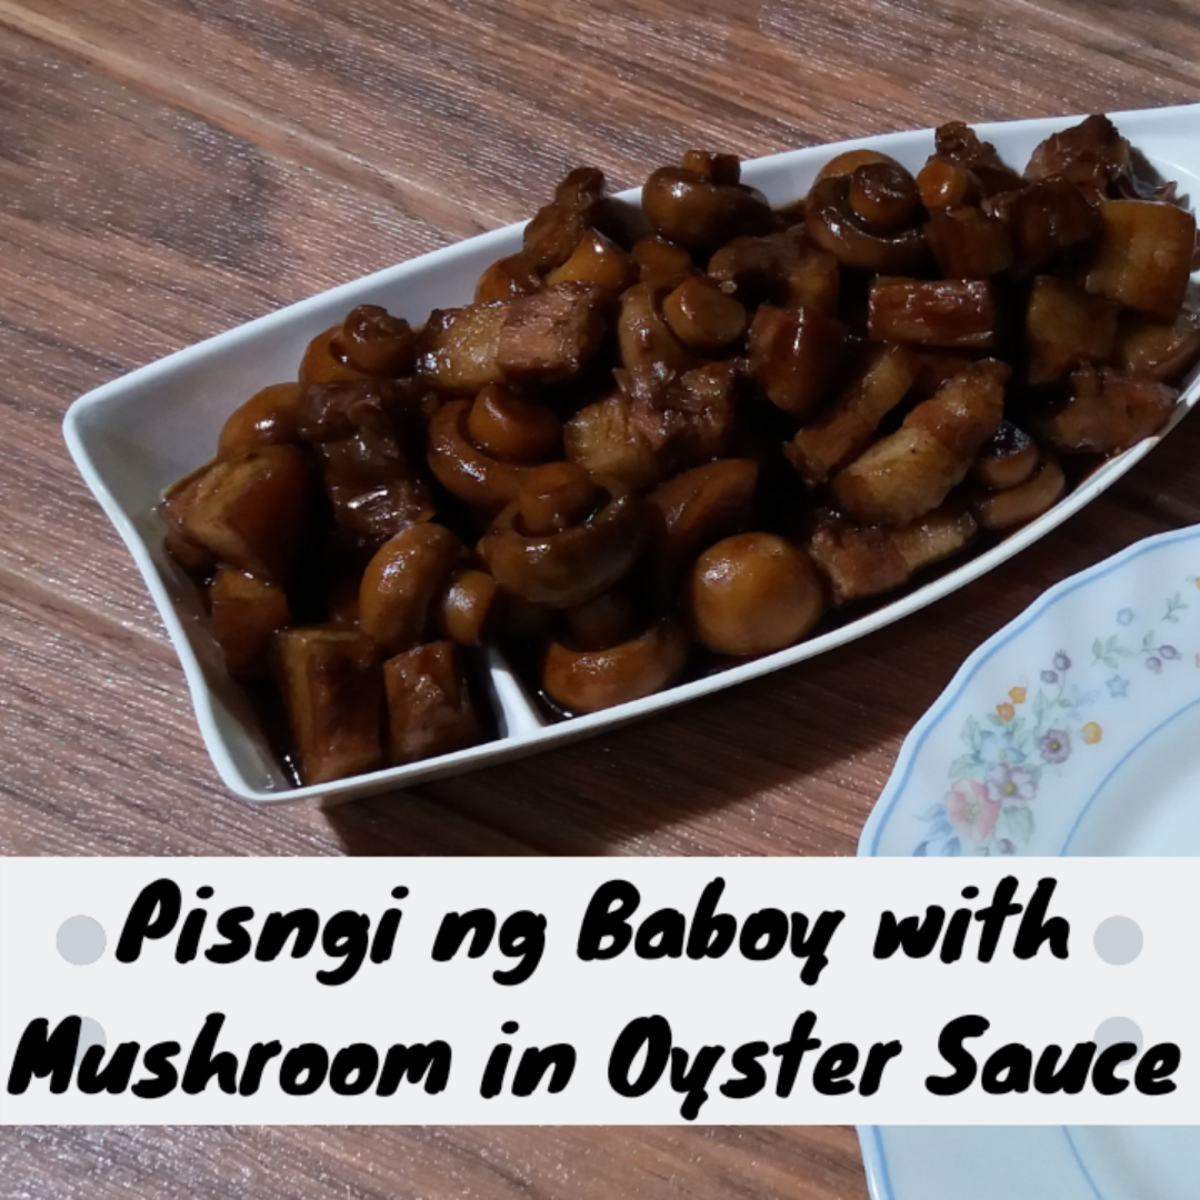 How to Cook Pisngi ng Baboy With Mushroom